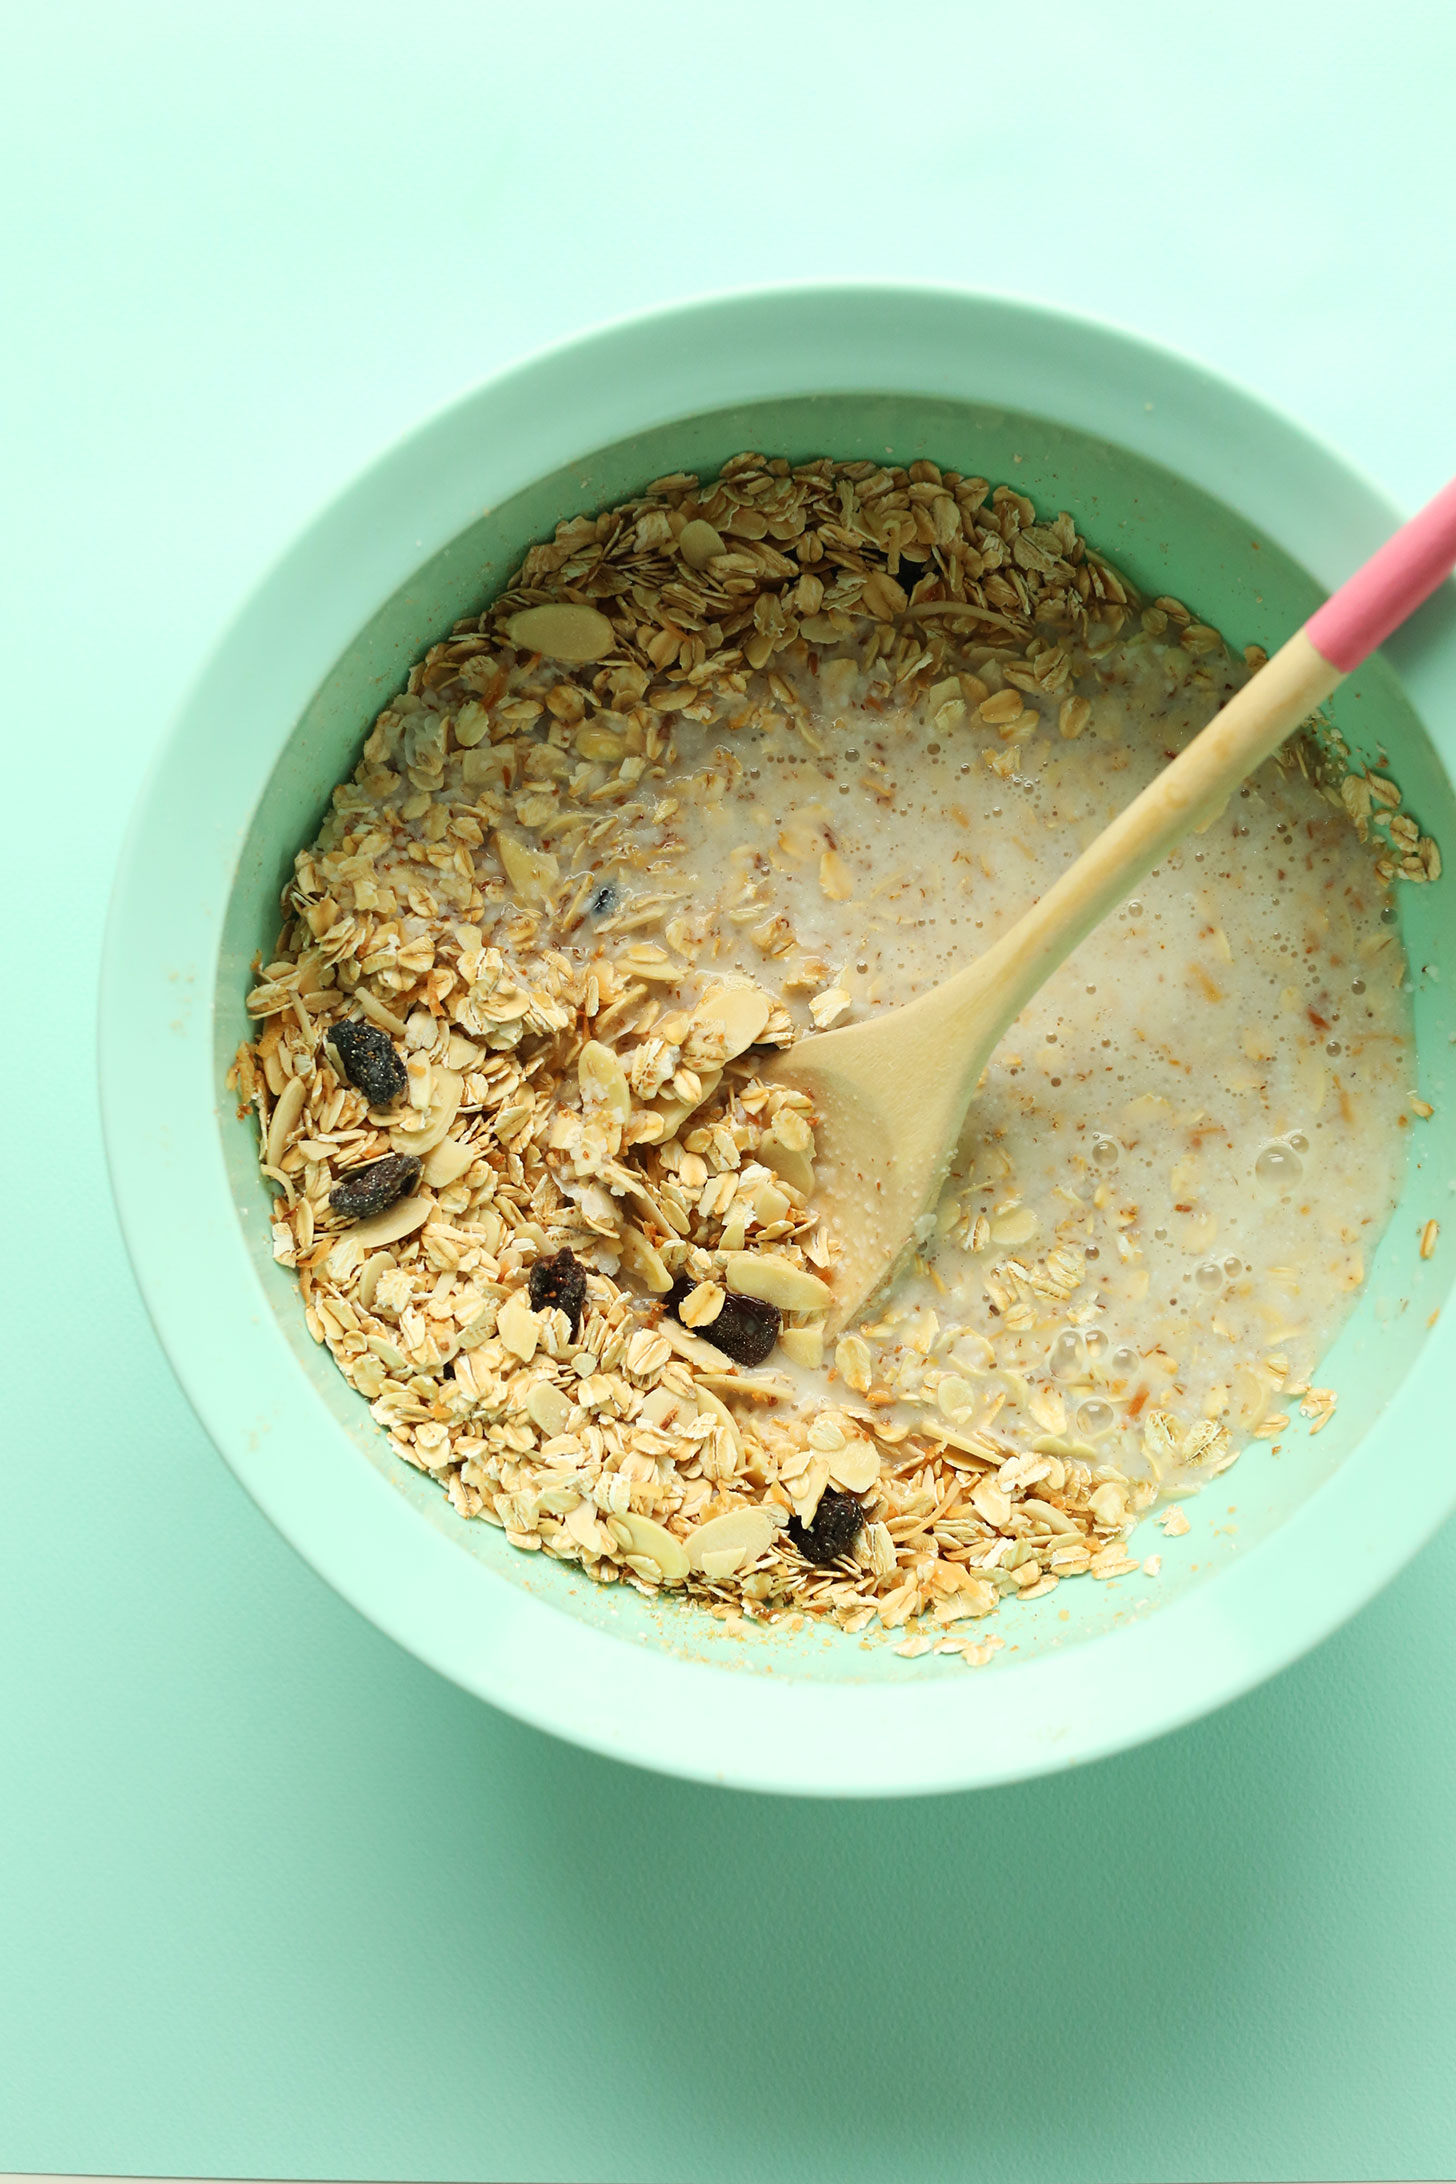 Stirring ingredients together for gluten-free vegan Toasted Coconut Baked Oatmeal